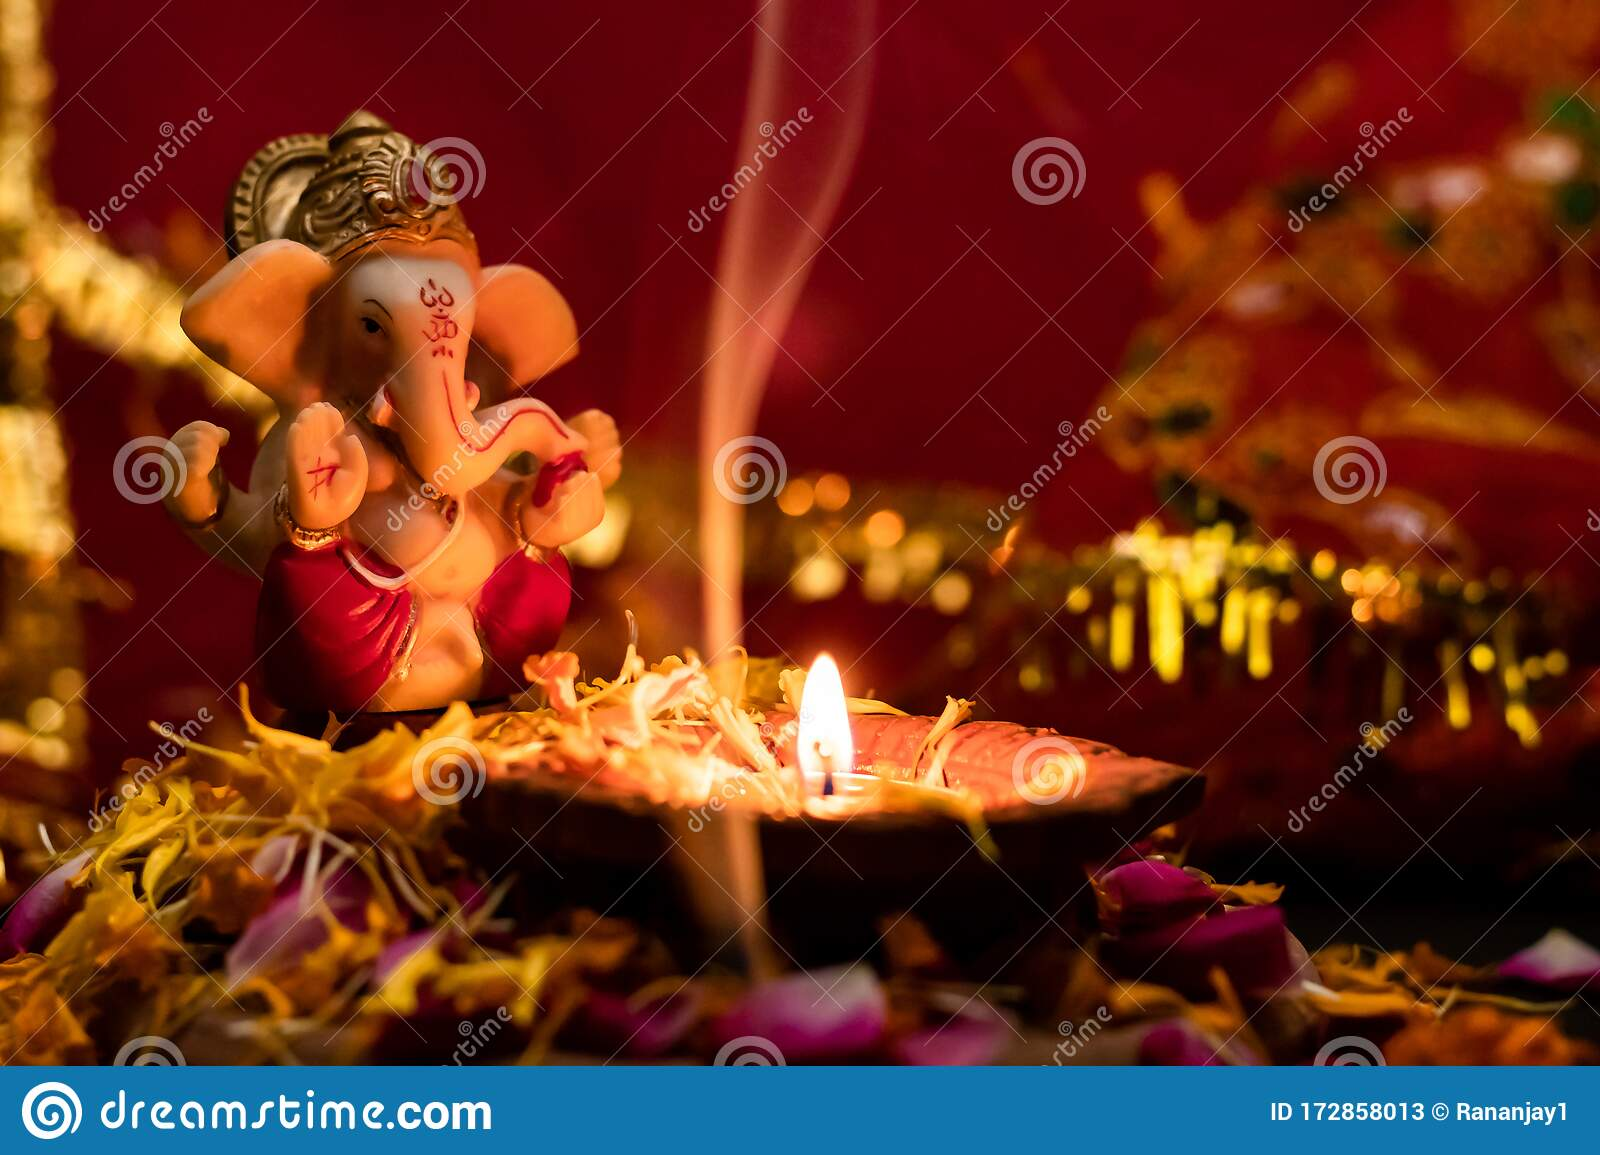 3 434 Beautiful Lord Ganesha Photos Free Royalty Free Stock Photos From Dreamstime